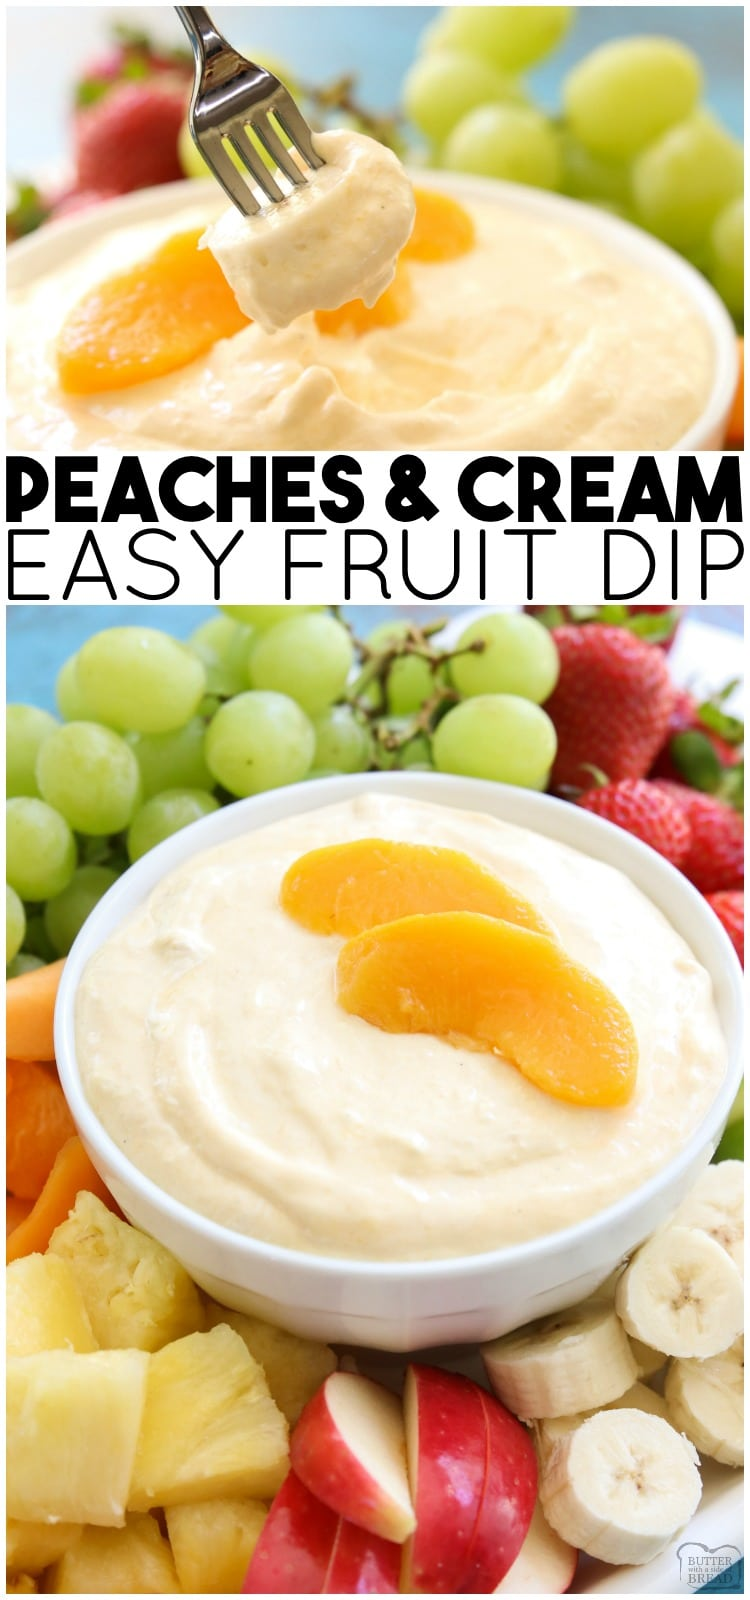 Peaches and Cream Fruit Dip is a sweet cream cheese fruit dip perfect for any occasion! This 5 ingredient peaches and creamrecipe is easy, delicious, and perfect served with fresh fruit.